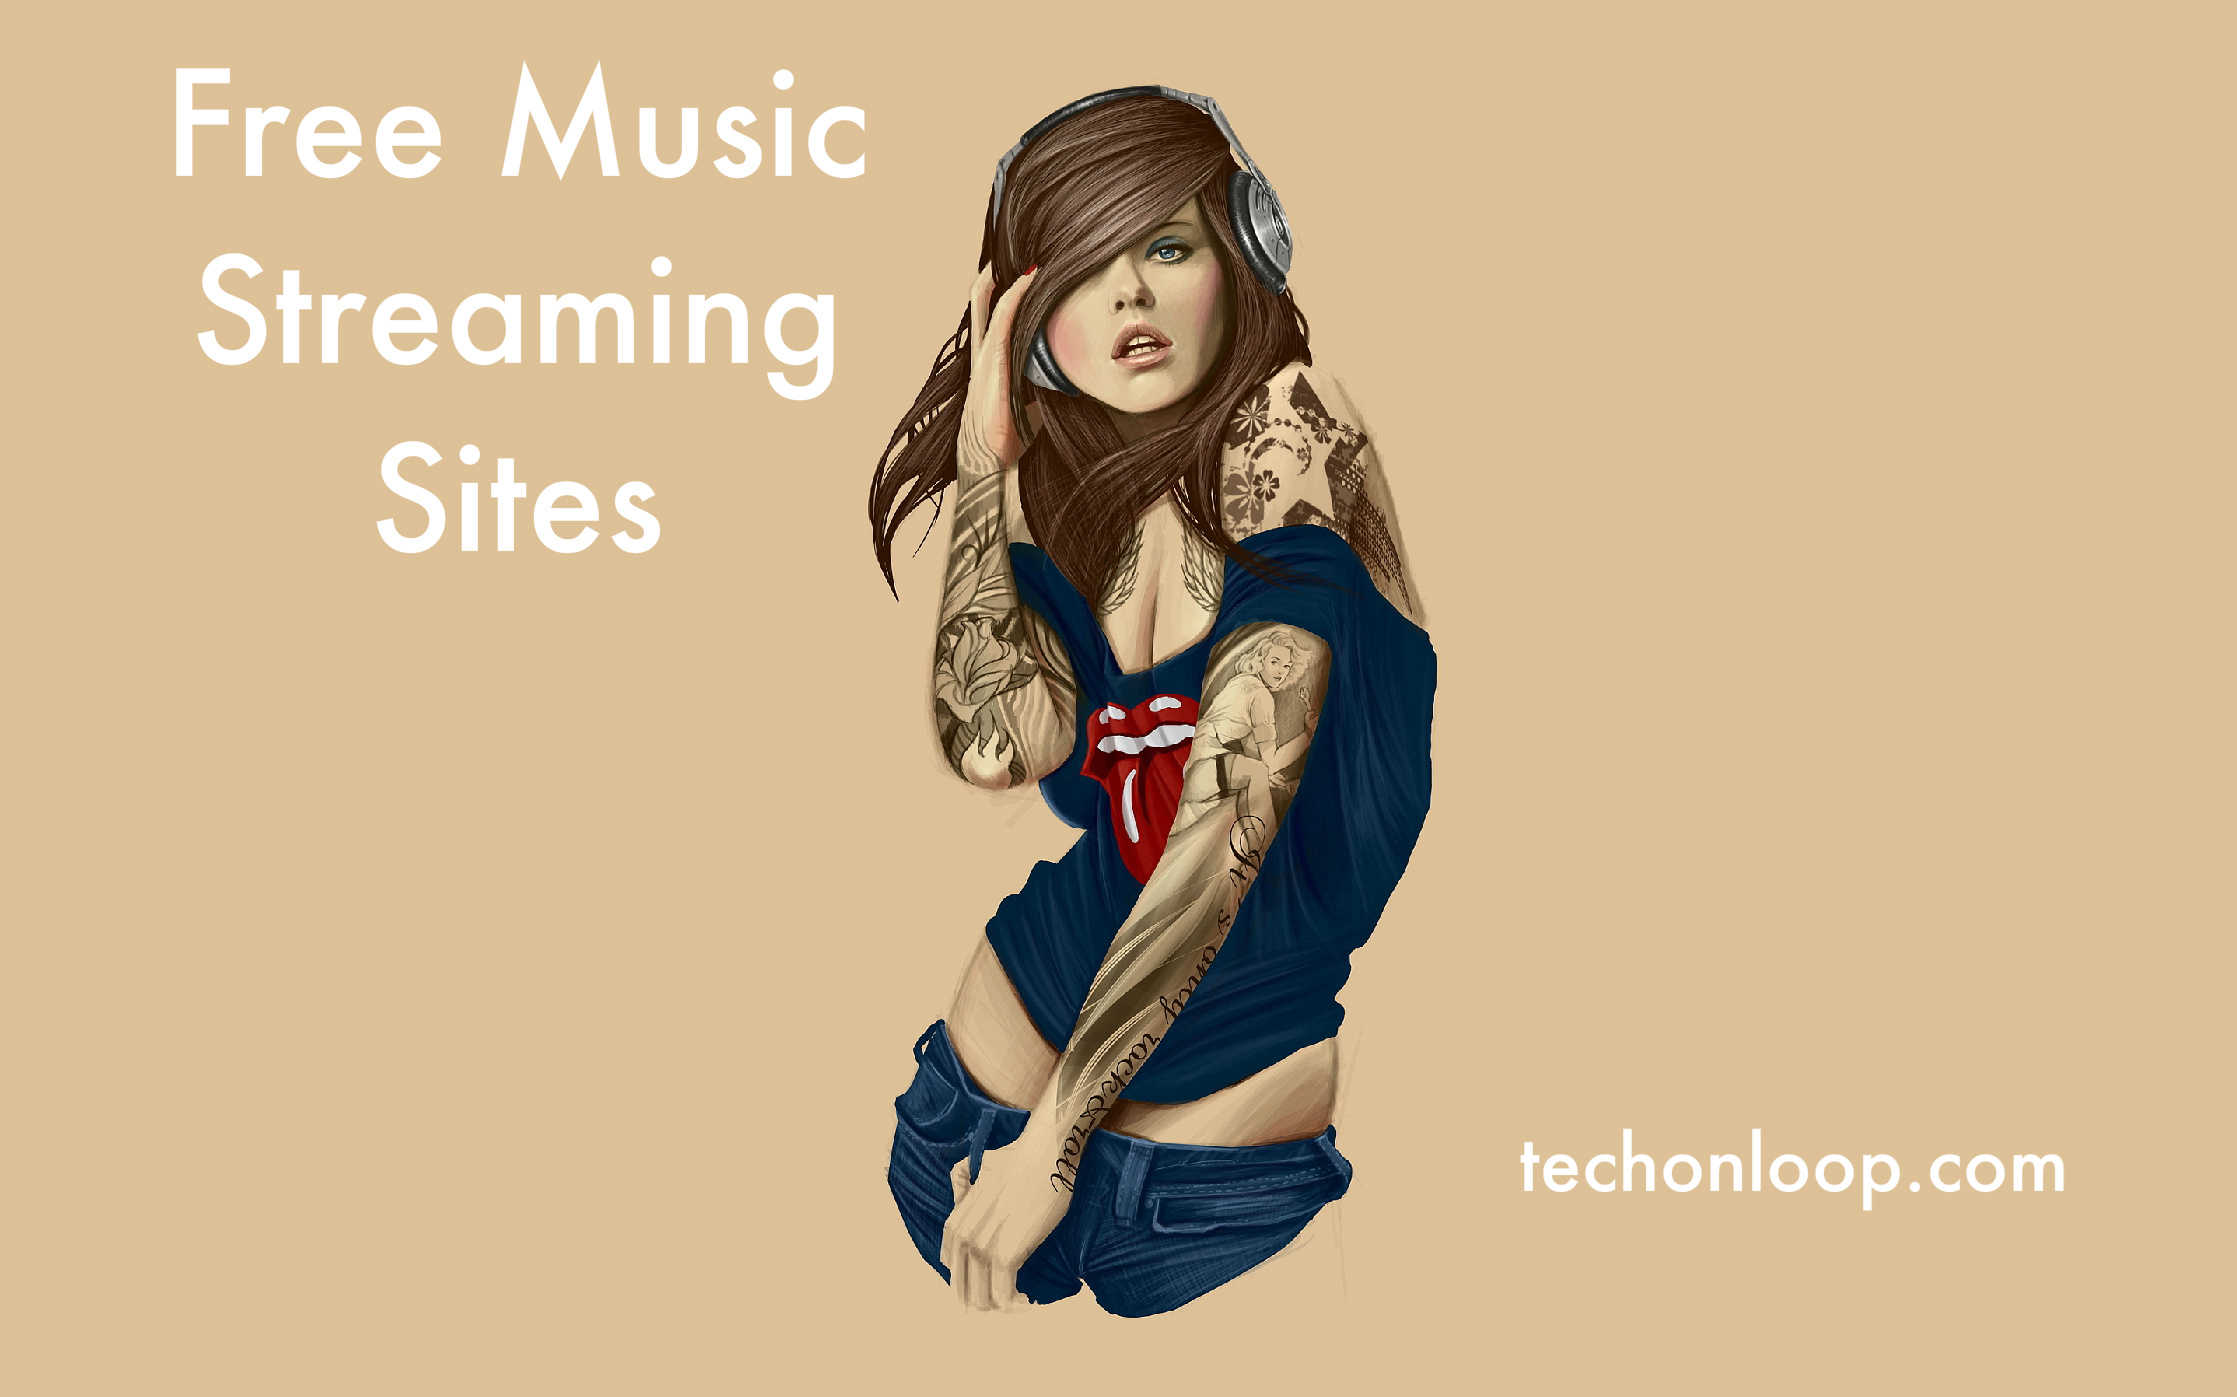 1- Pandora- Best site for Streaming Music Free